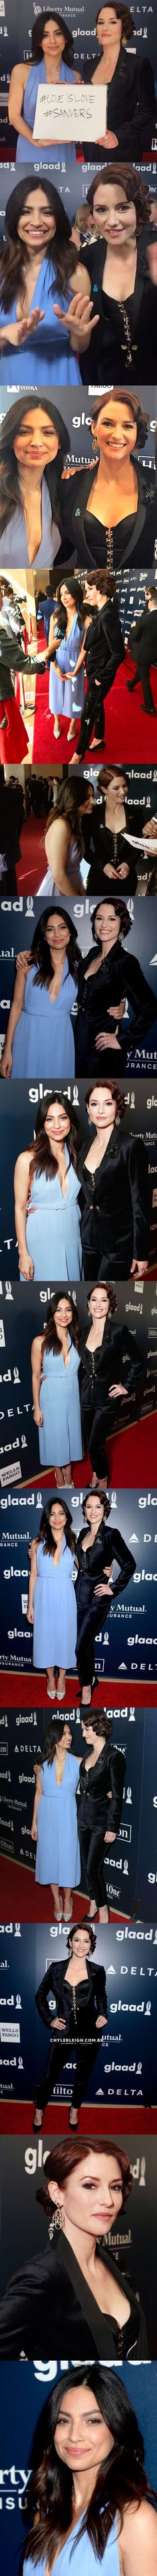 Chyler Leigh and Floriana Lima on 2017 Glaad awards <3 - Sanvers - Flyler - Alex Danvers - Maggie Sawyer - Supergirl